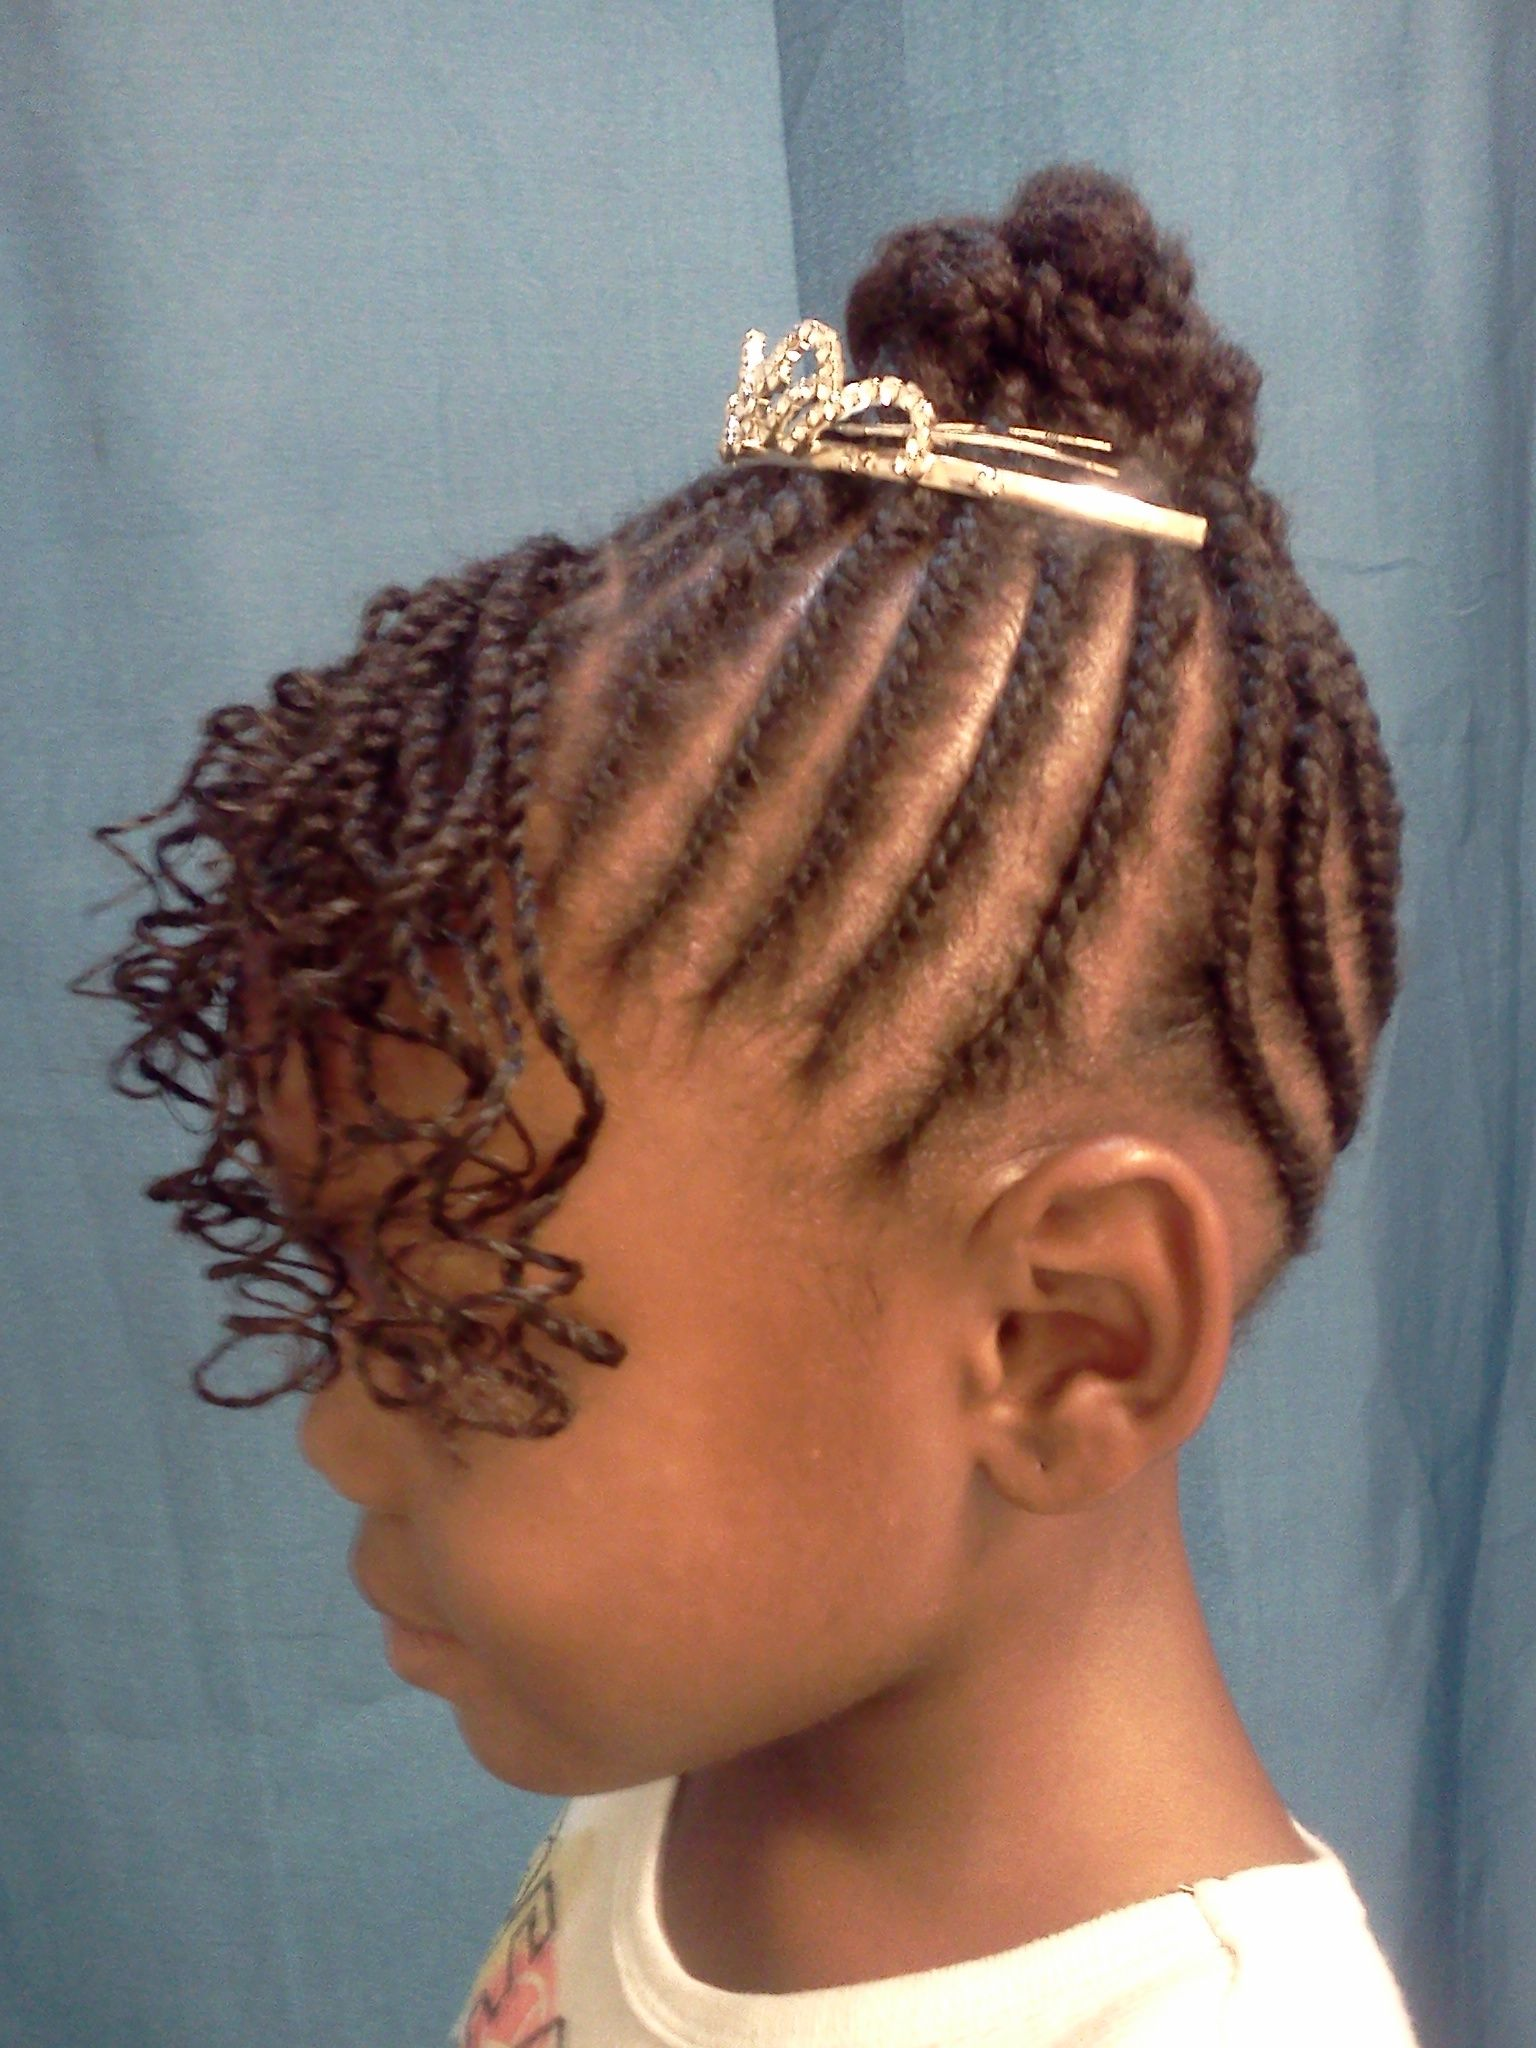 She Used Jbco On A Twa Twist Out The Style She Got Out Of